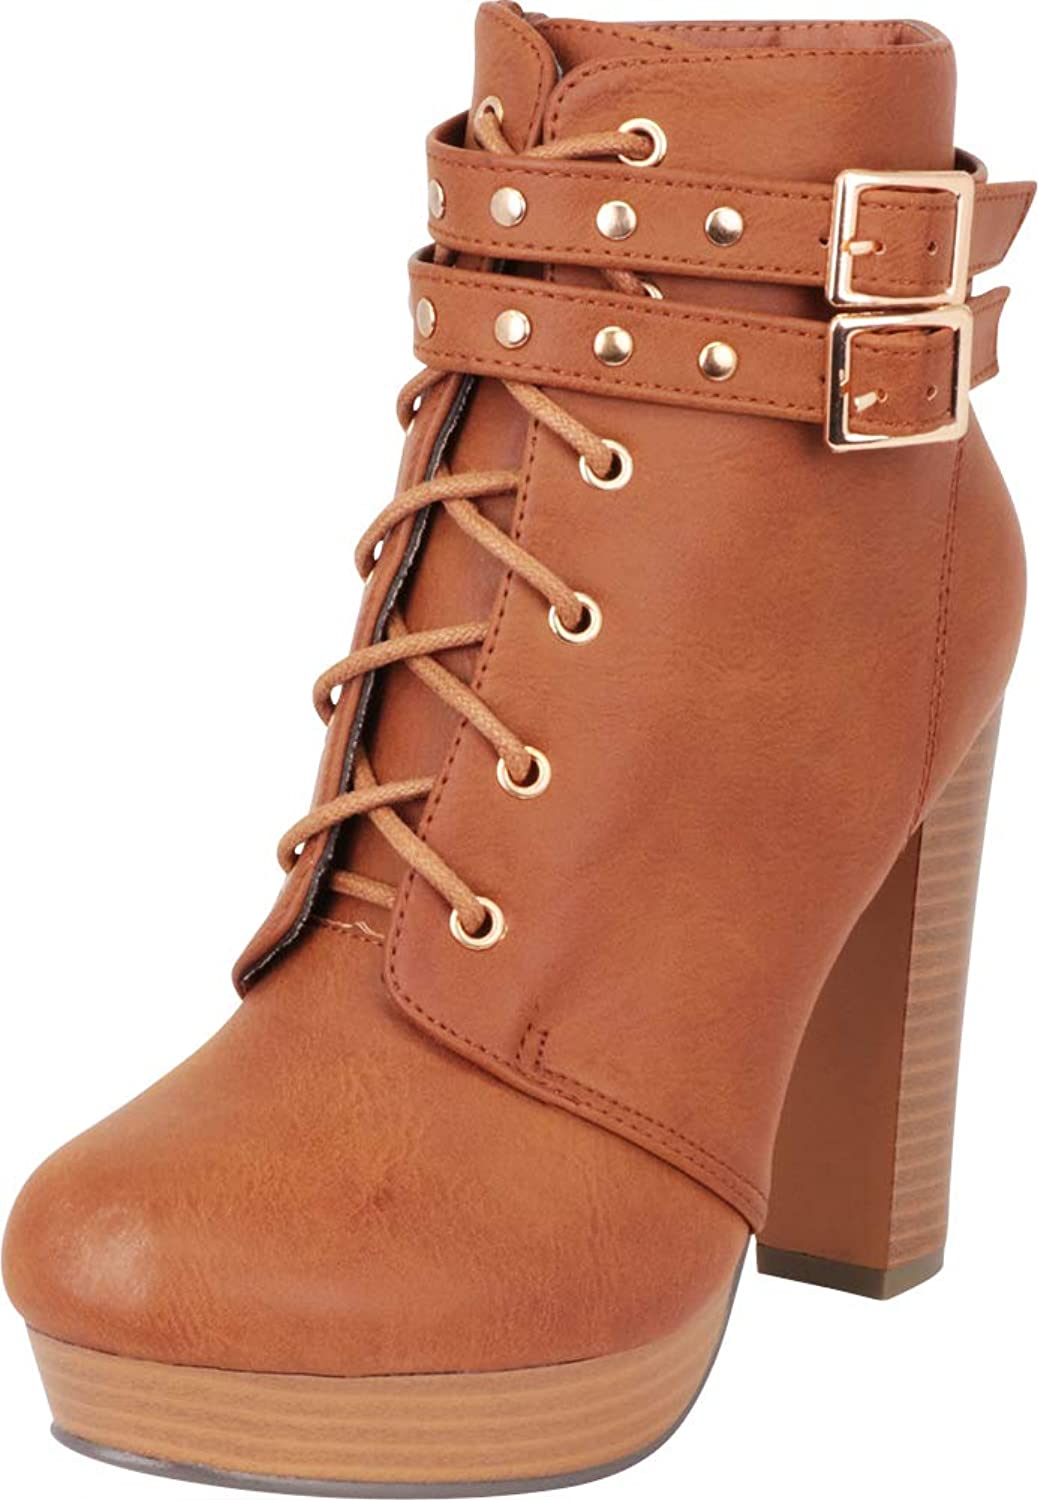 Cambridge Select Women's Studded Strappy Buckle Lace-Up Chunky Platform High Heel Ankle Bootie